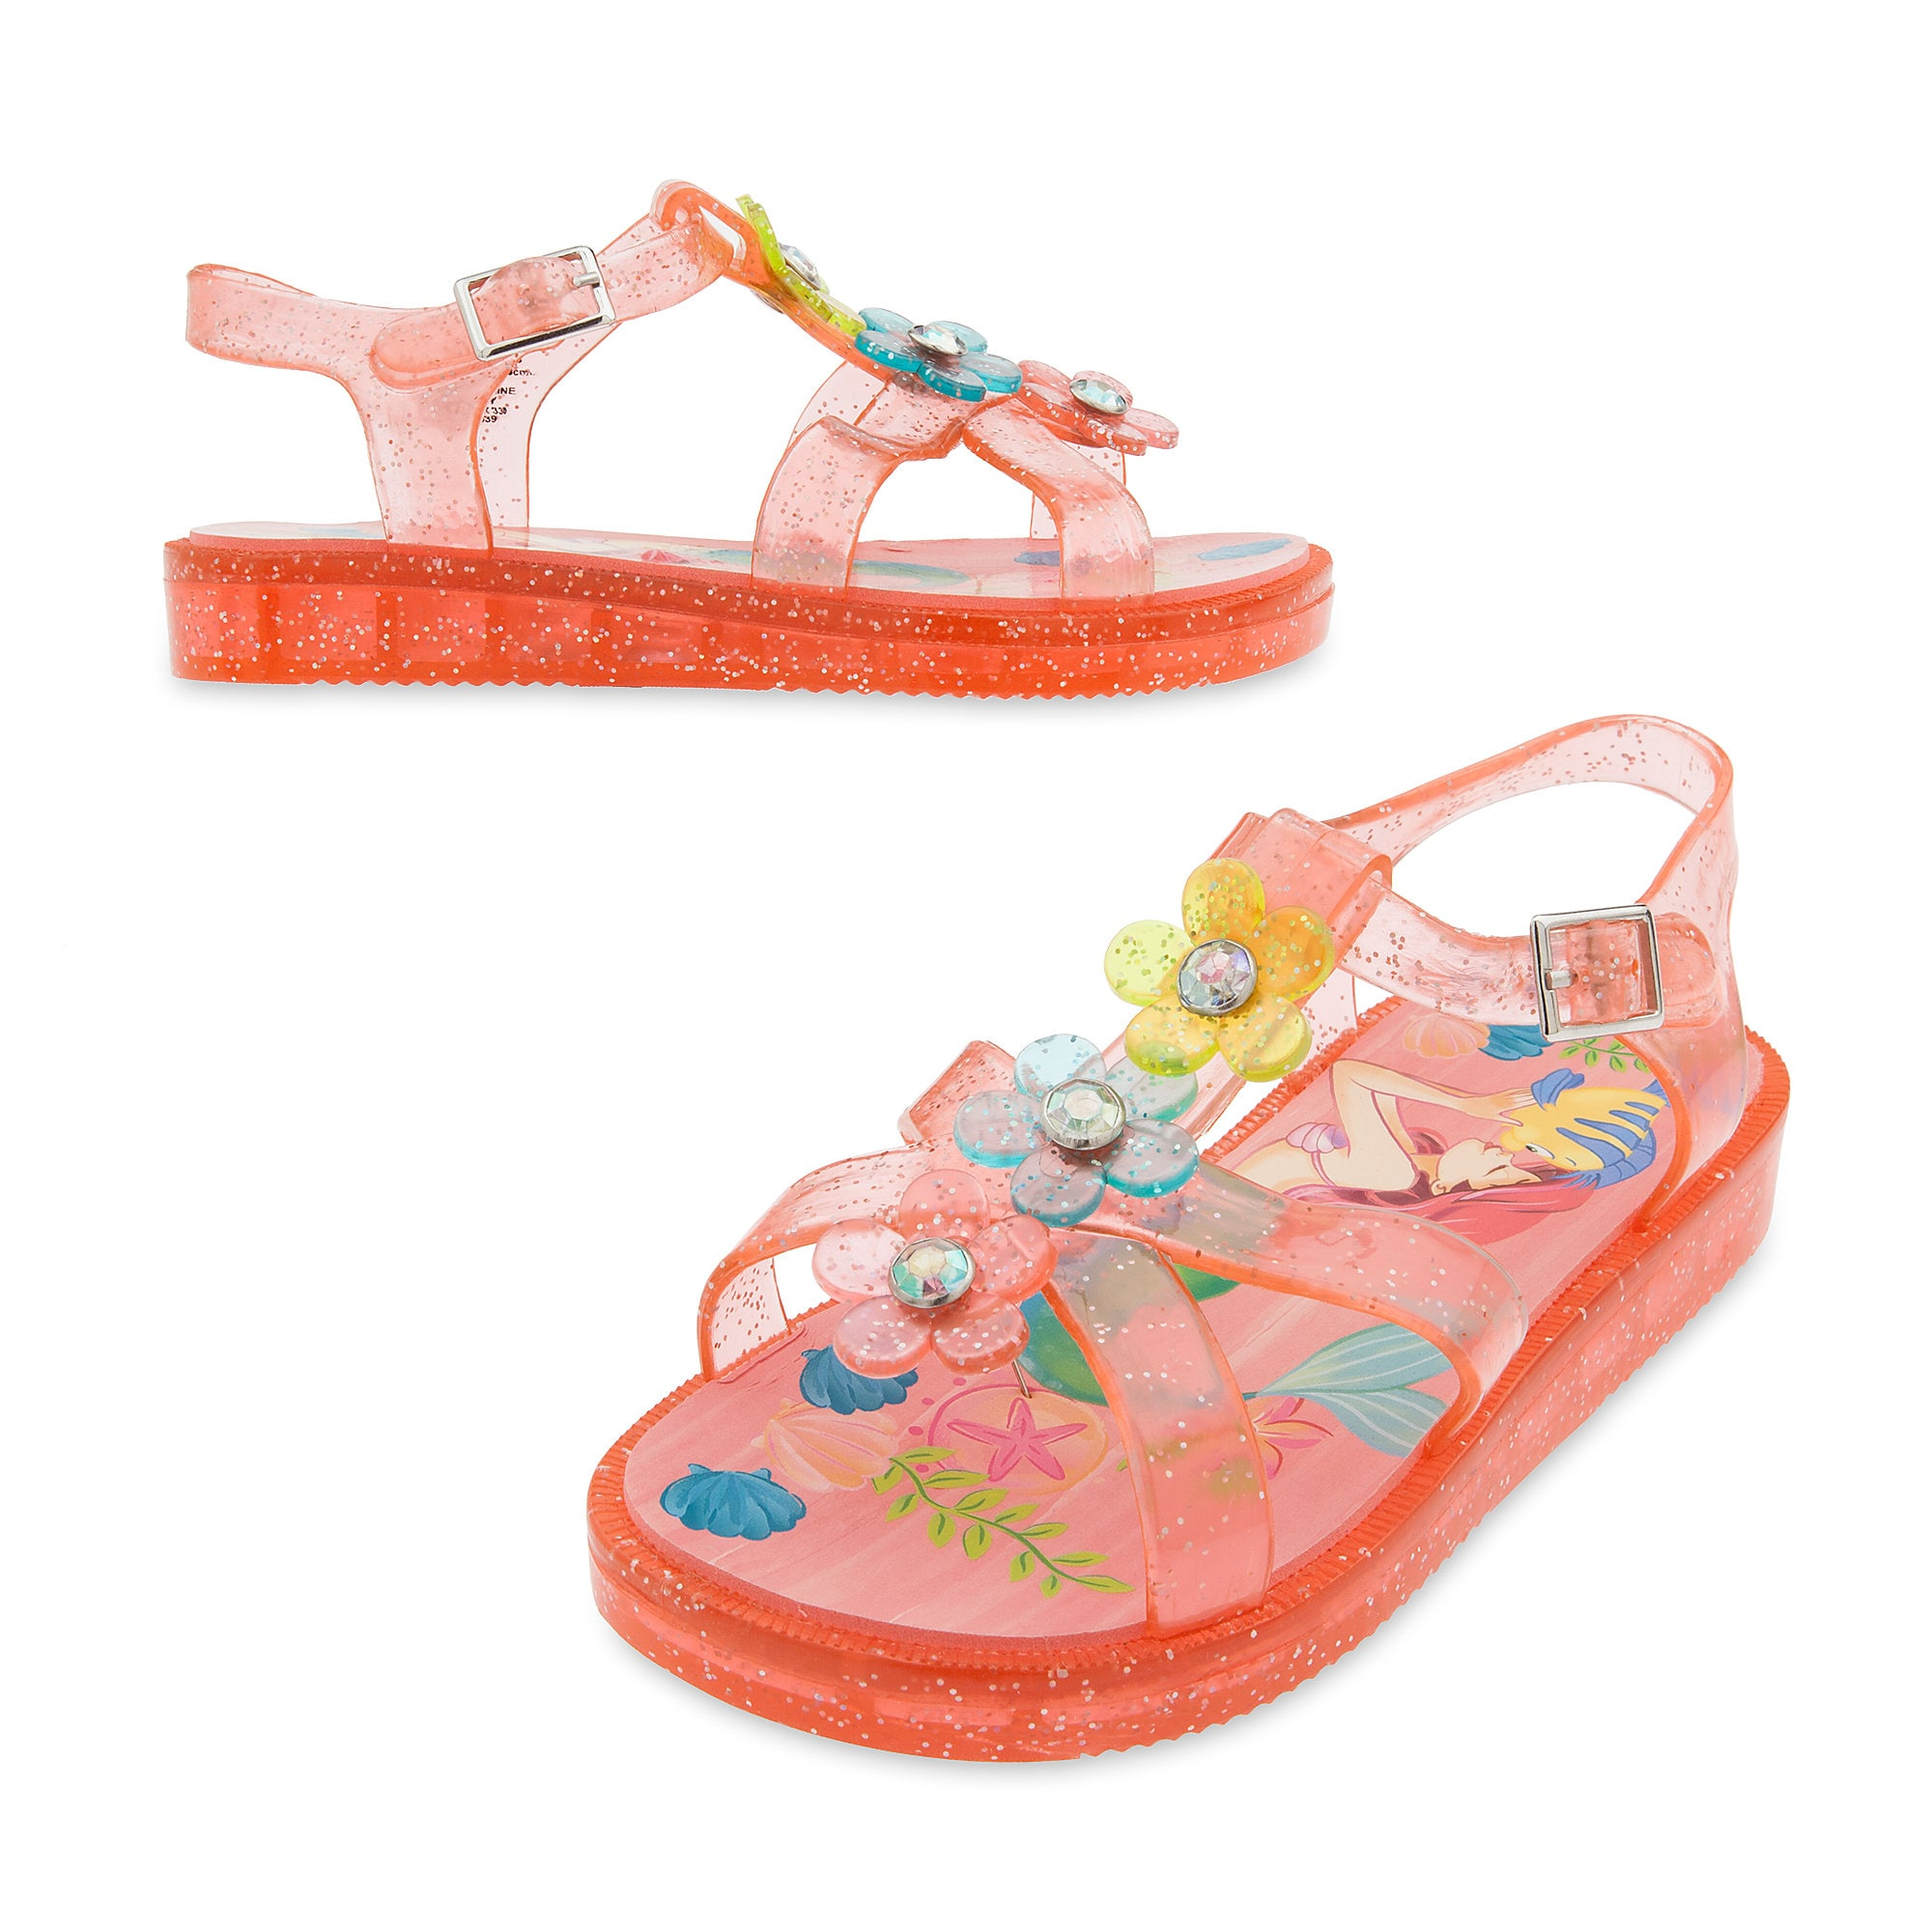 Ariel Jelly Sandals for Kids